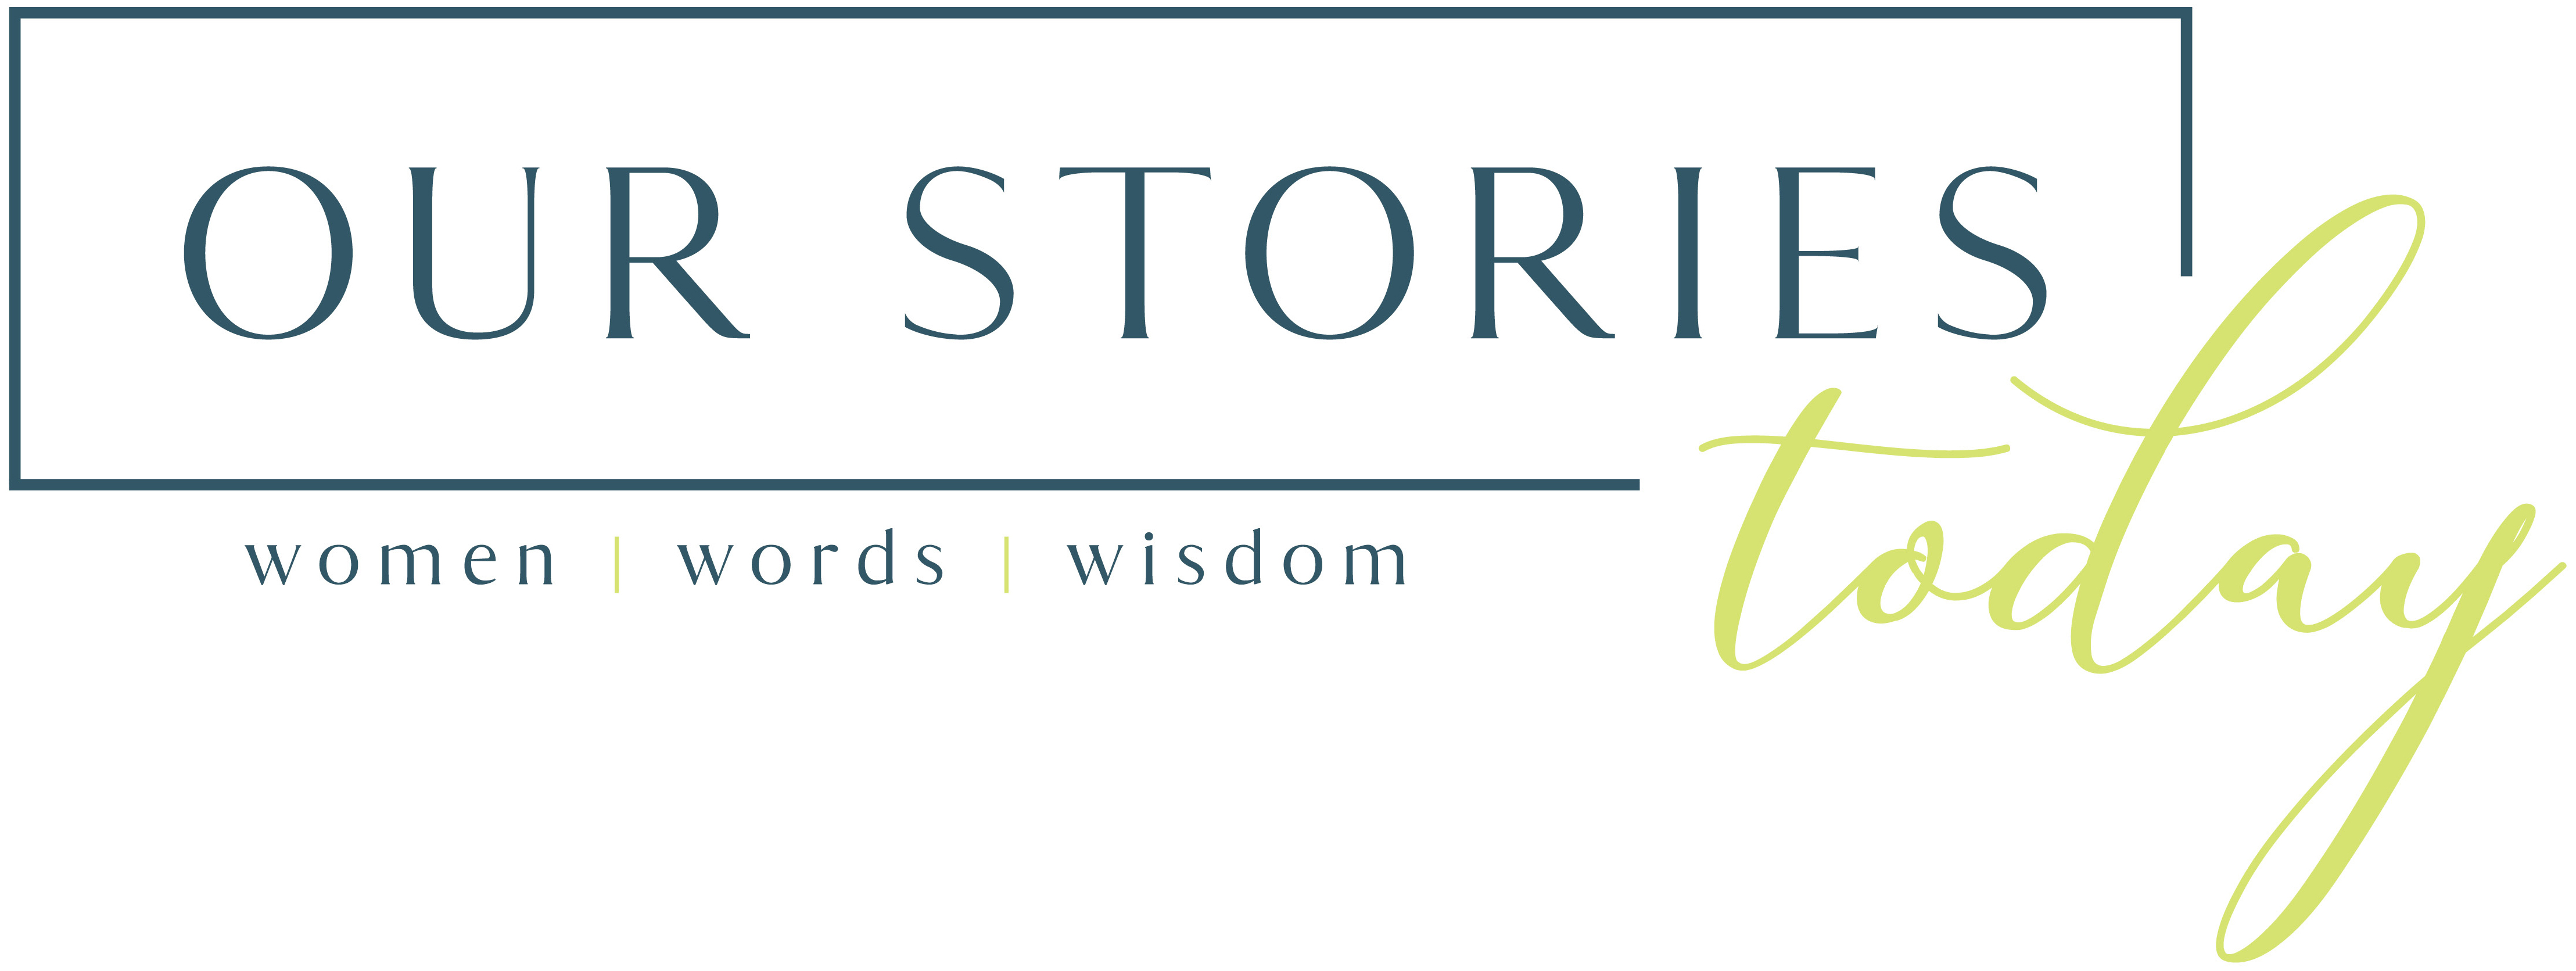 Our Stories Today logo